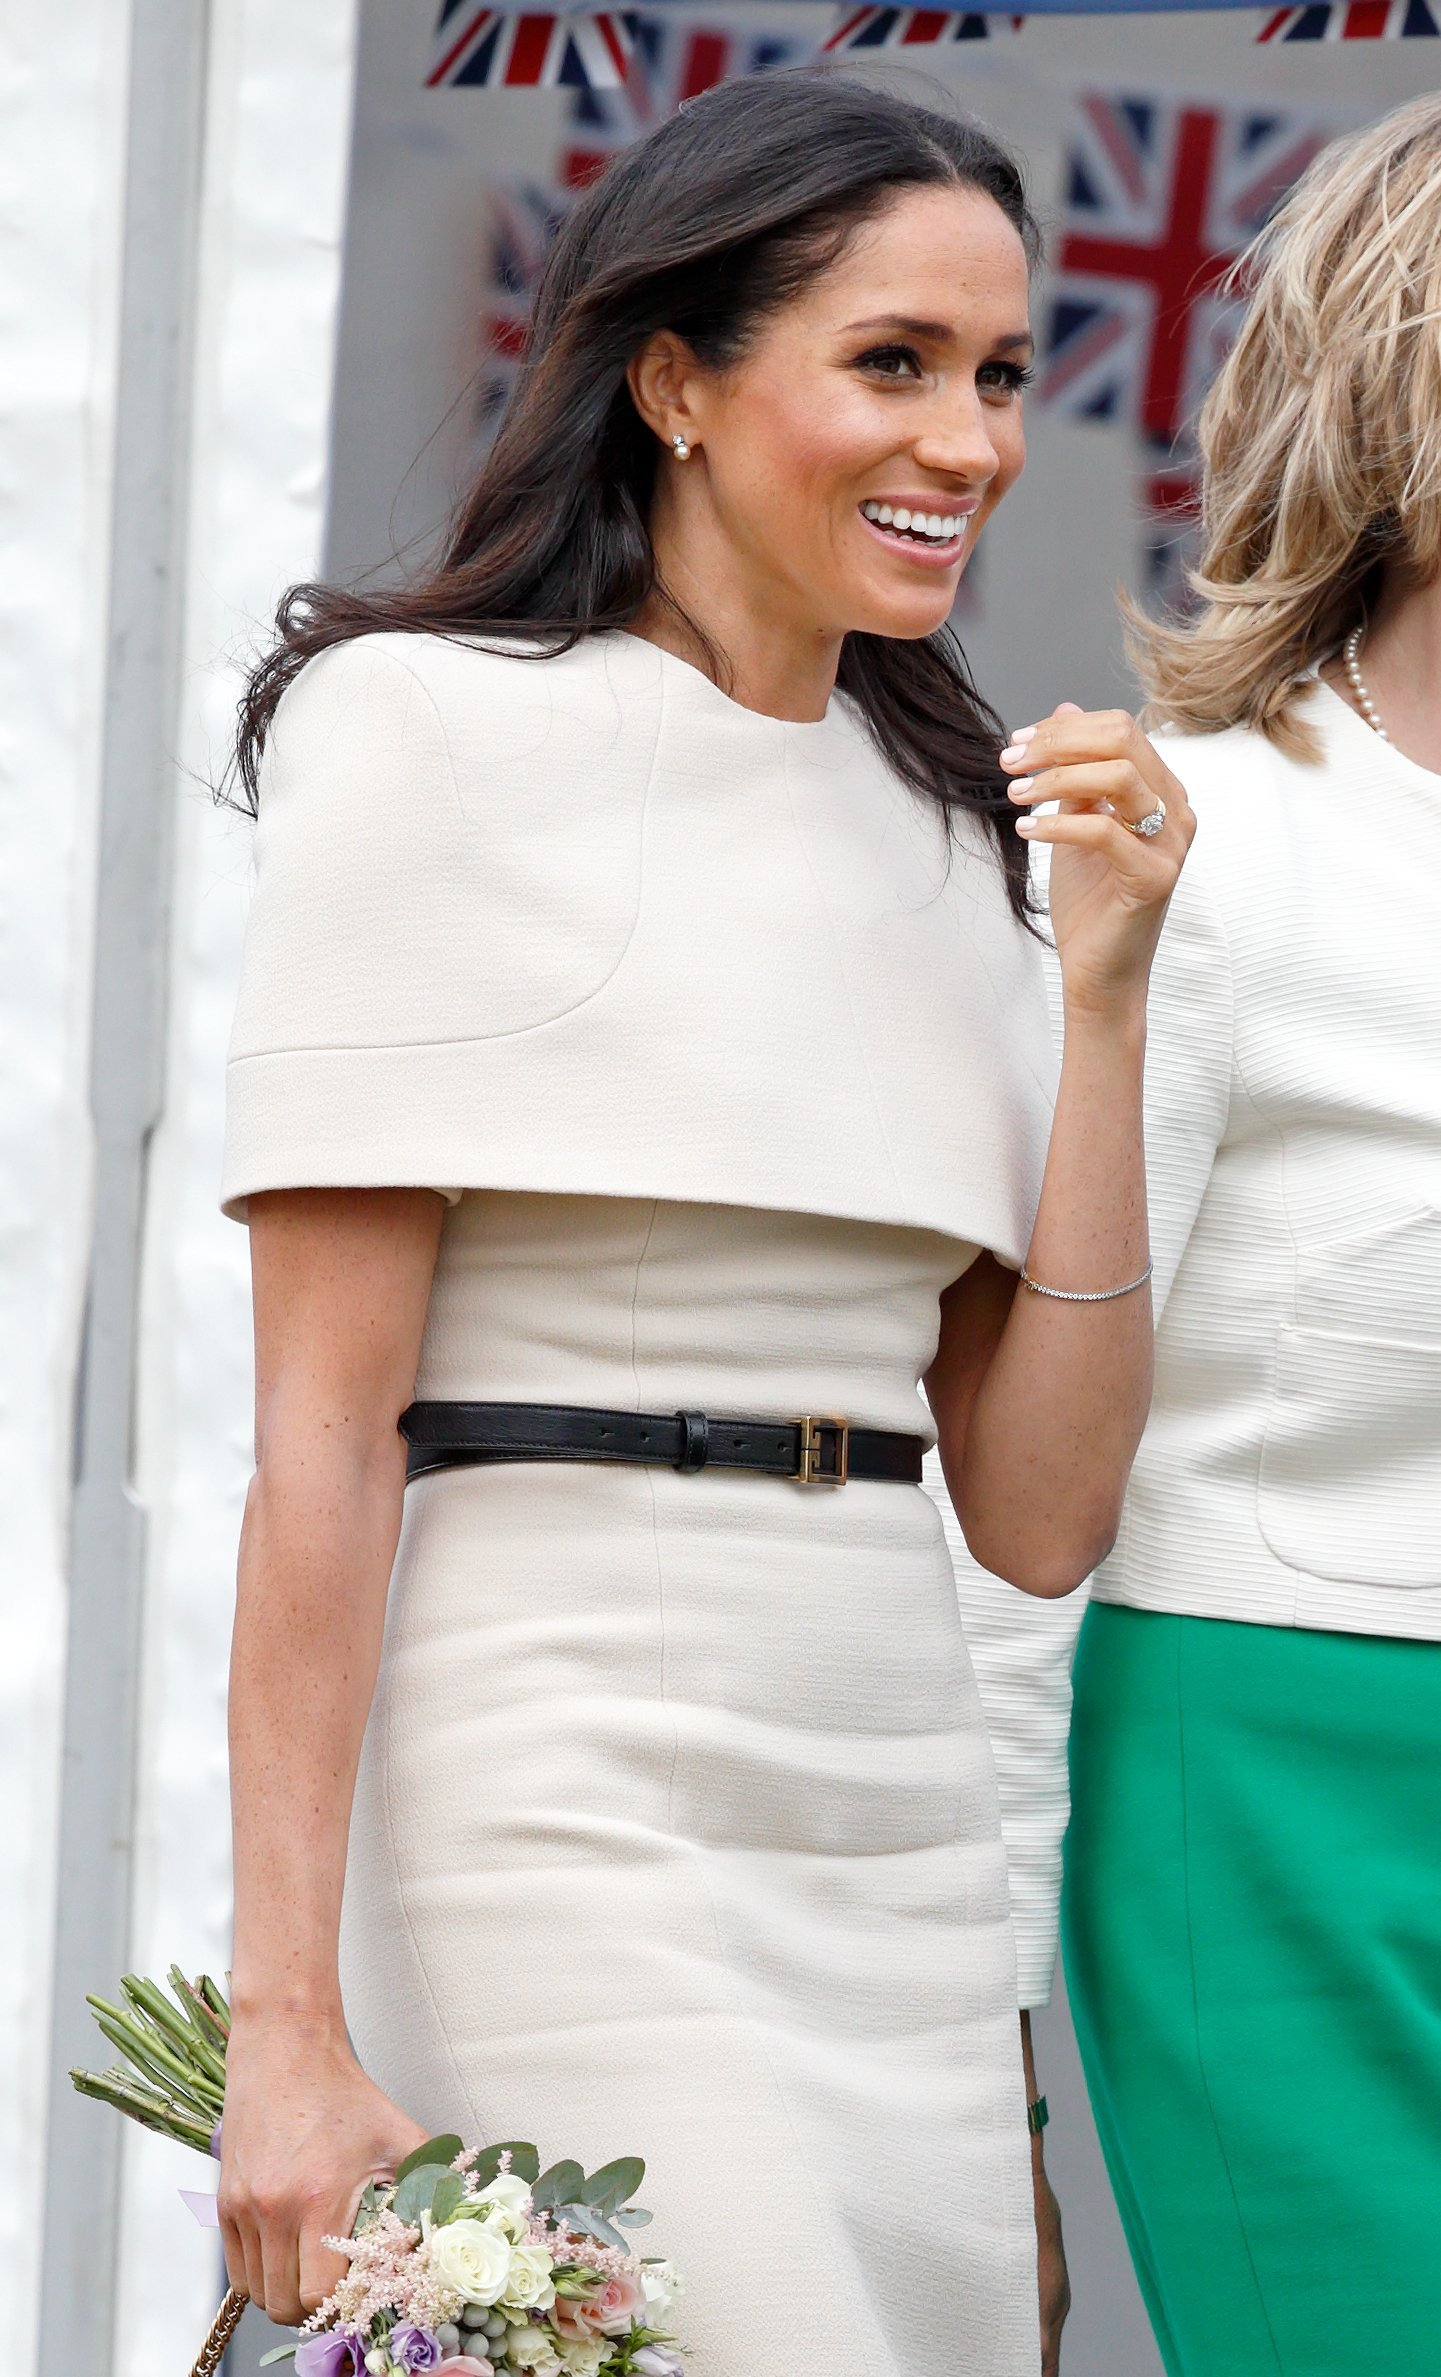 Meghan, Duchess of Sussex attends a ceremony to open the new Mersey Gateway Bridge on June 14, 2018 in Widens, England. | Source: Getty Images.